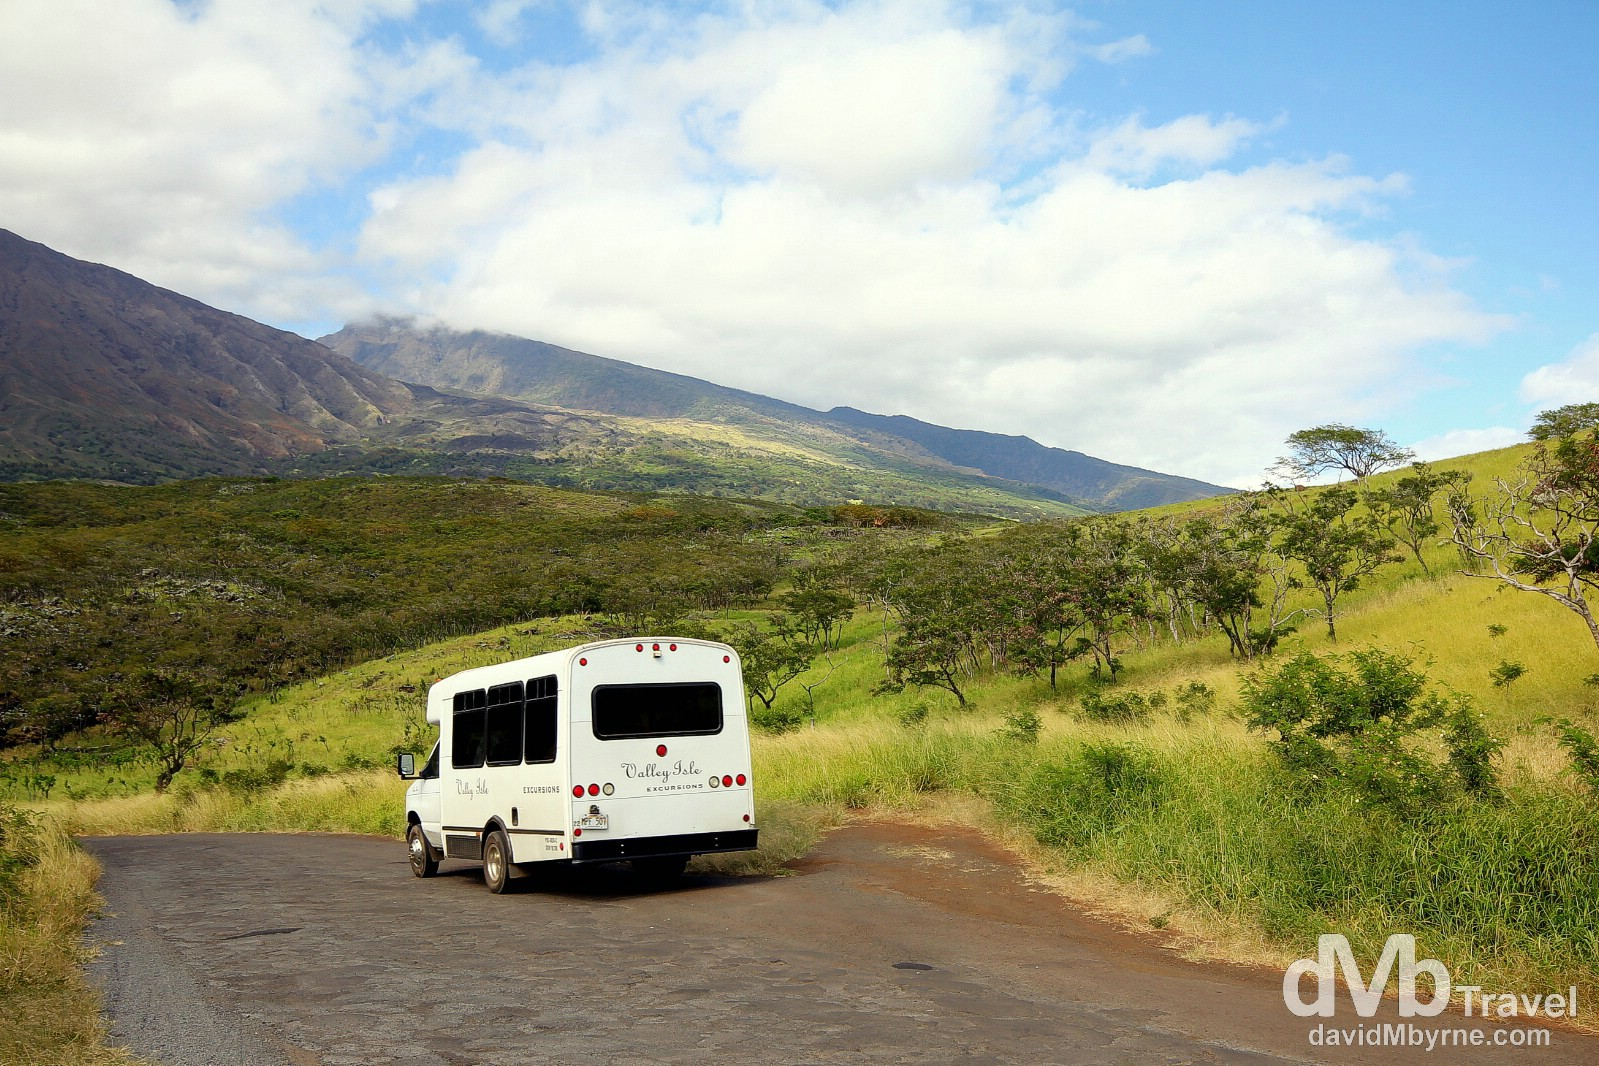 A Valley Isle Excursions van on a section of the 'Road To Hana' tour on the Piilani Highway/Kalama Park Road in southern Maui, Hawaii, USA. March 7th 2103.